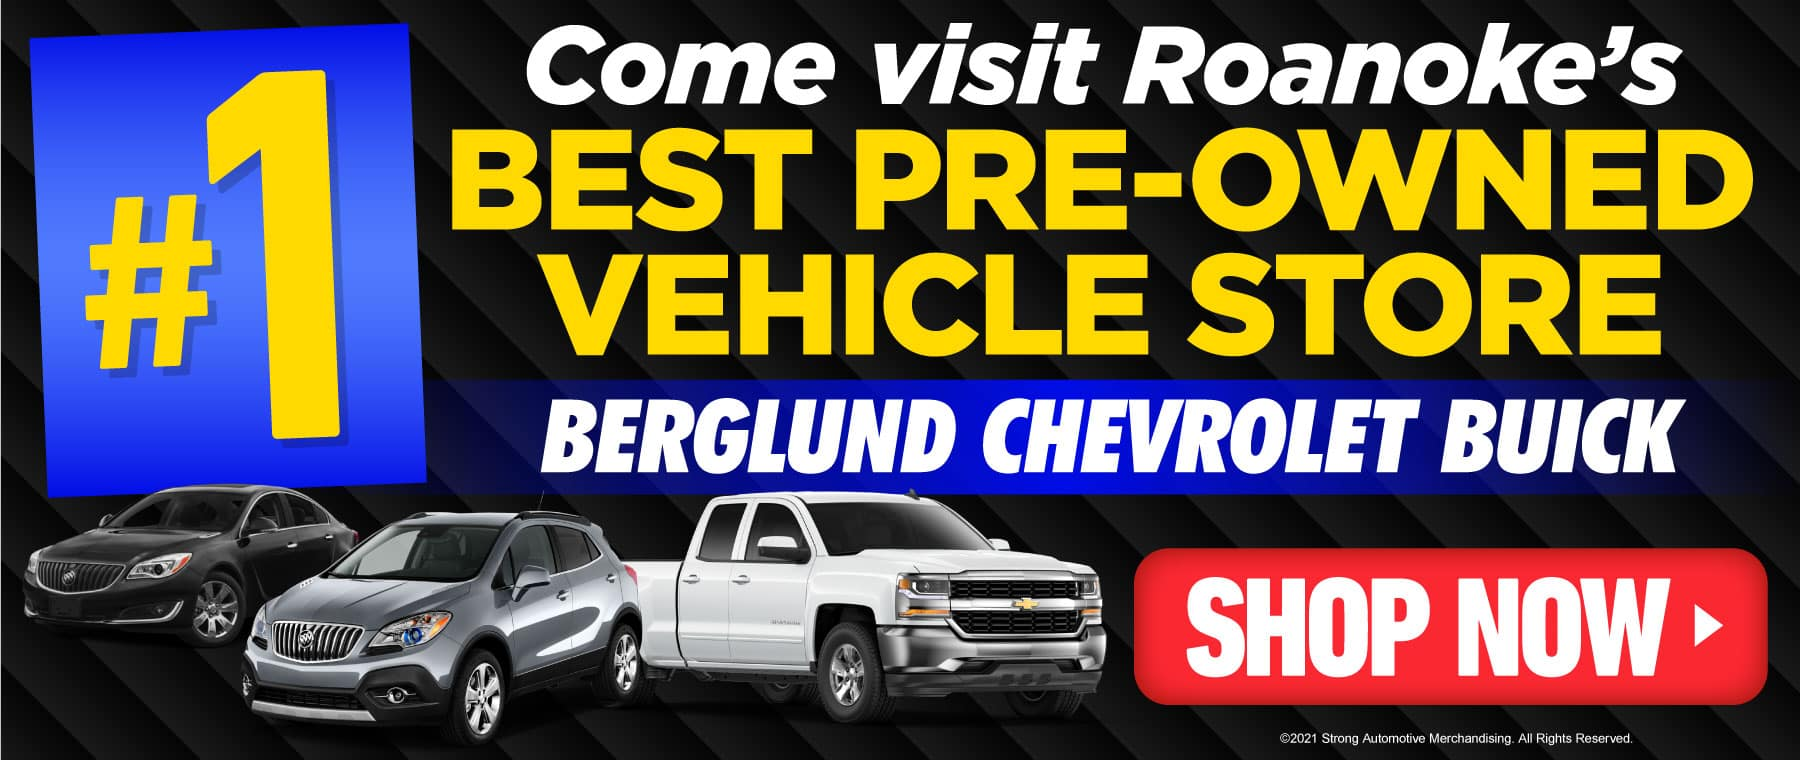 Come visit Roanoke's best pre-owned vehicle store - Click to Shop NOW